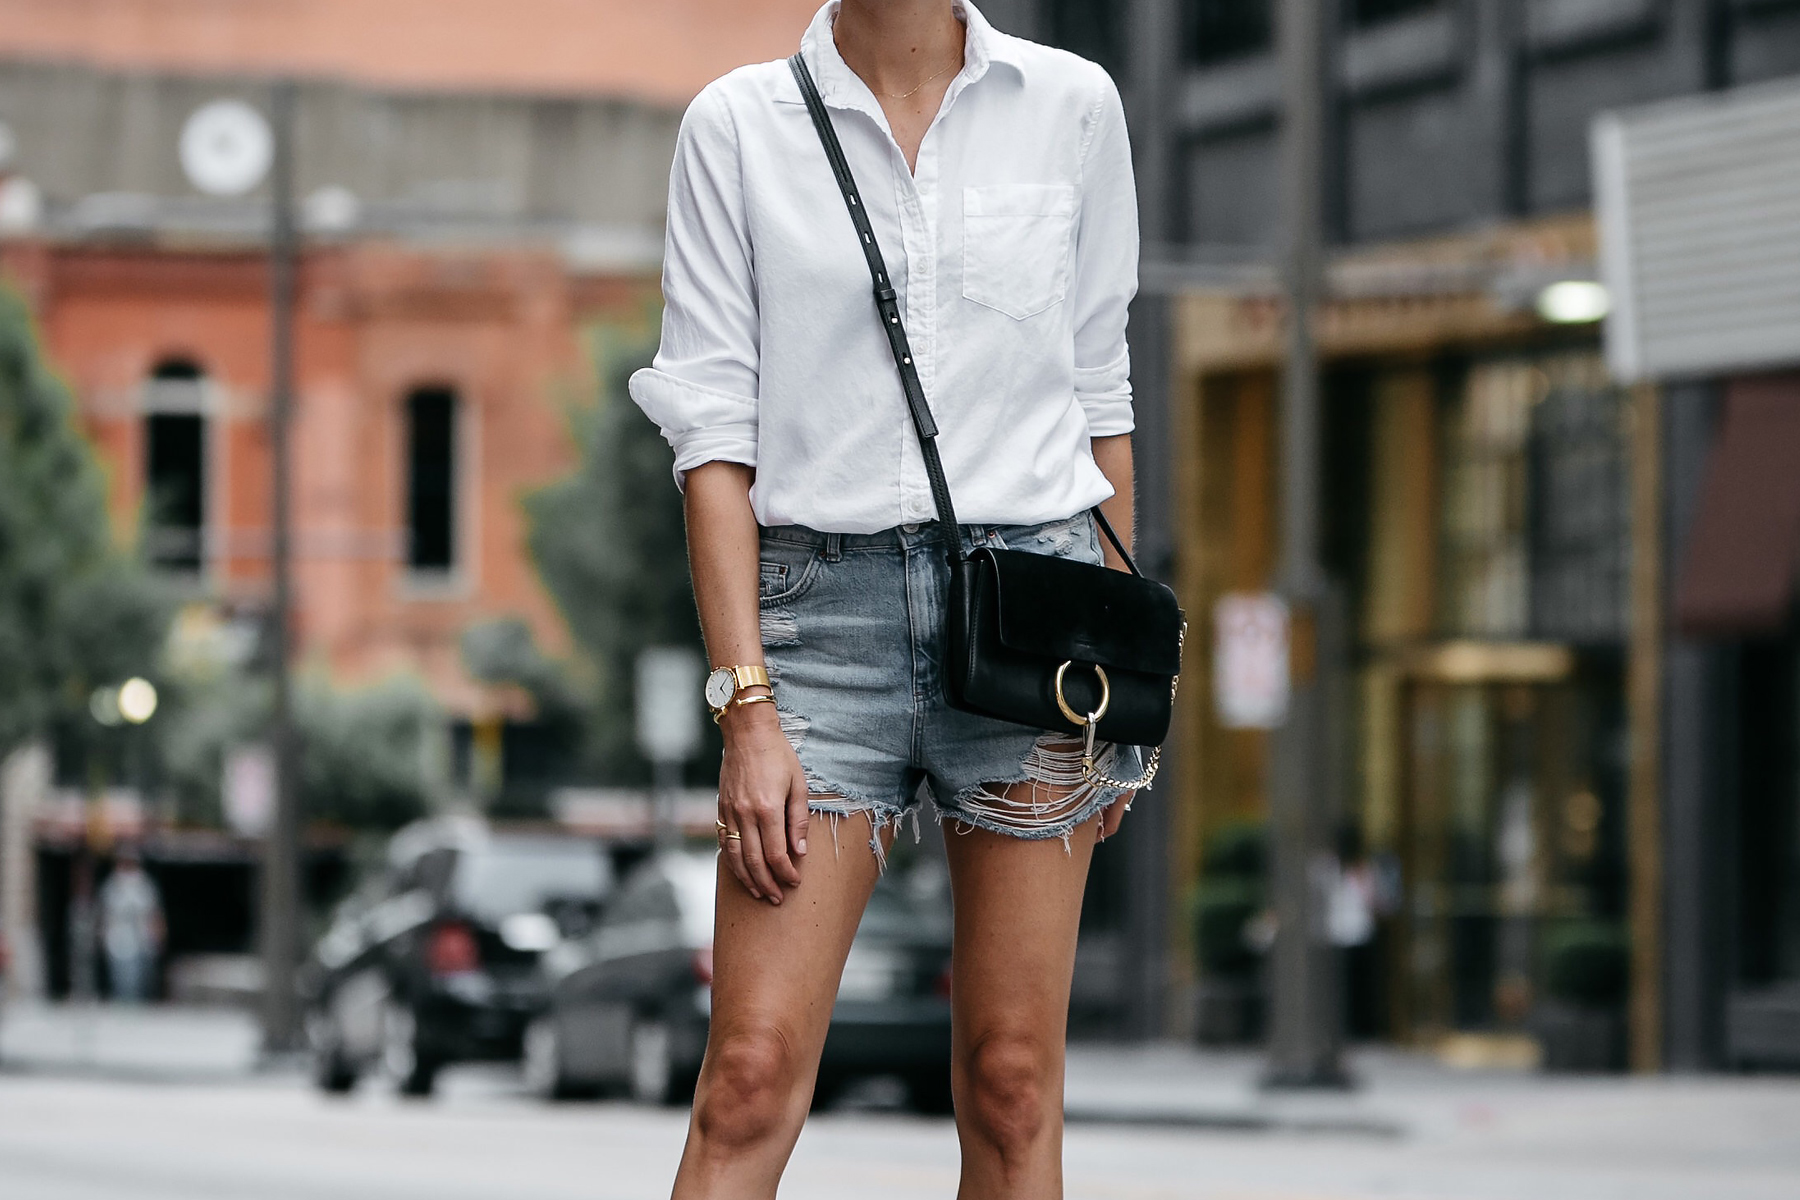 Banana Republic White Button Down Shirt Topshop Ripped Denim Cutoff Shorts Outfit Chloe Faye Handbag Street Style Dallas Blogger Fashion Blogger Fashion Jackson